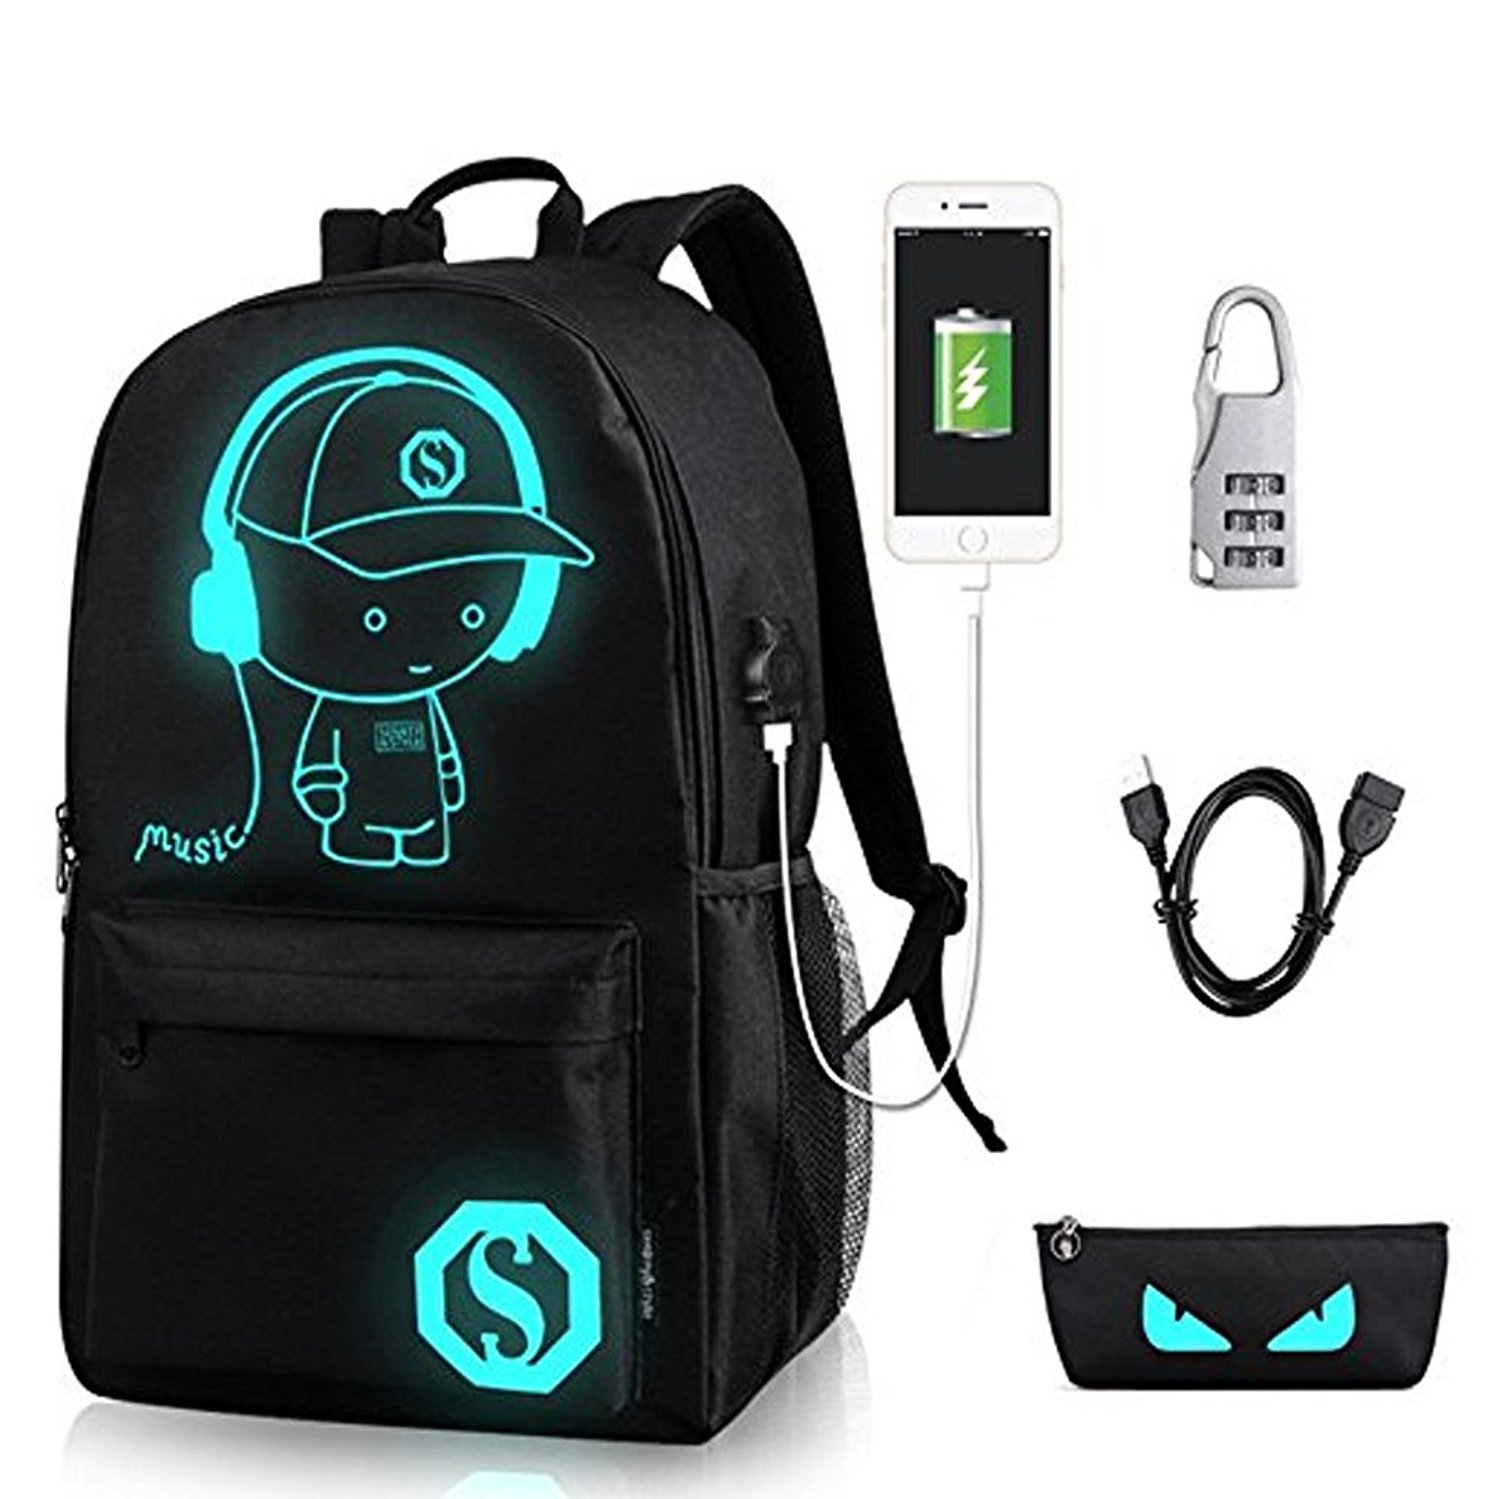 All'aperto U Sezione Zaino gray E Nuovo Corsa Bolsa Studenti 2018 Tattico Computer gray Borsa Vento U Collegio black Di Borse Set Universitari Donne No demon pirates Set Usb Music demon Uomini Black Boy Usb Per Sacchetto pirates Usb Set 8ERxqCwfx